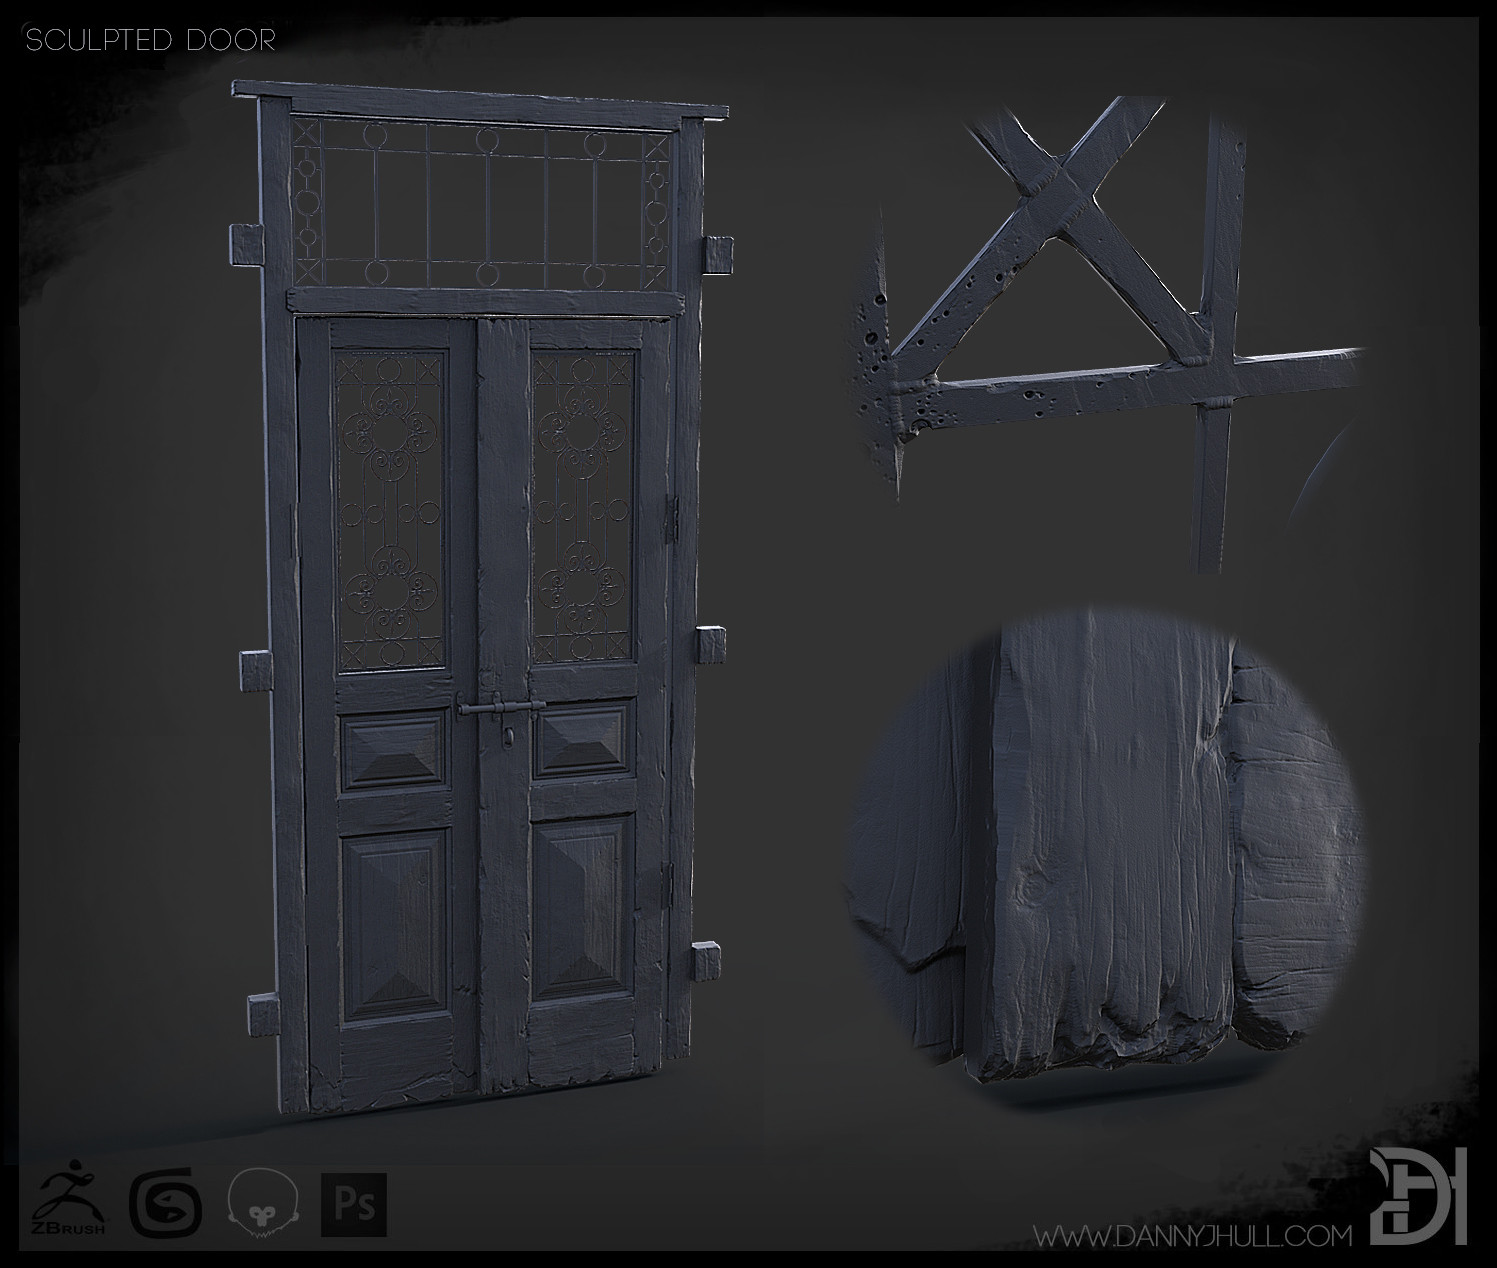 Daniel hull sculpted door renders